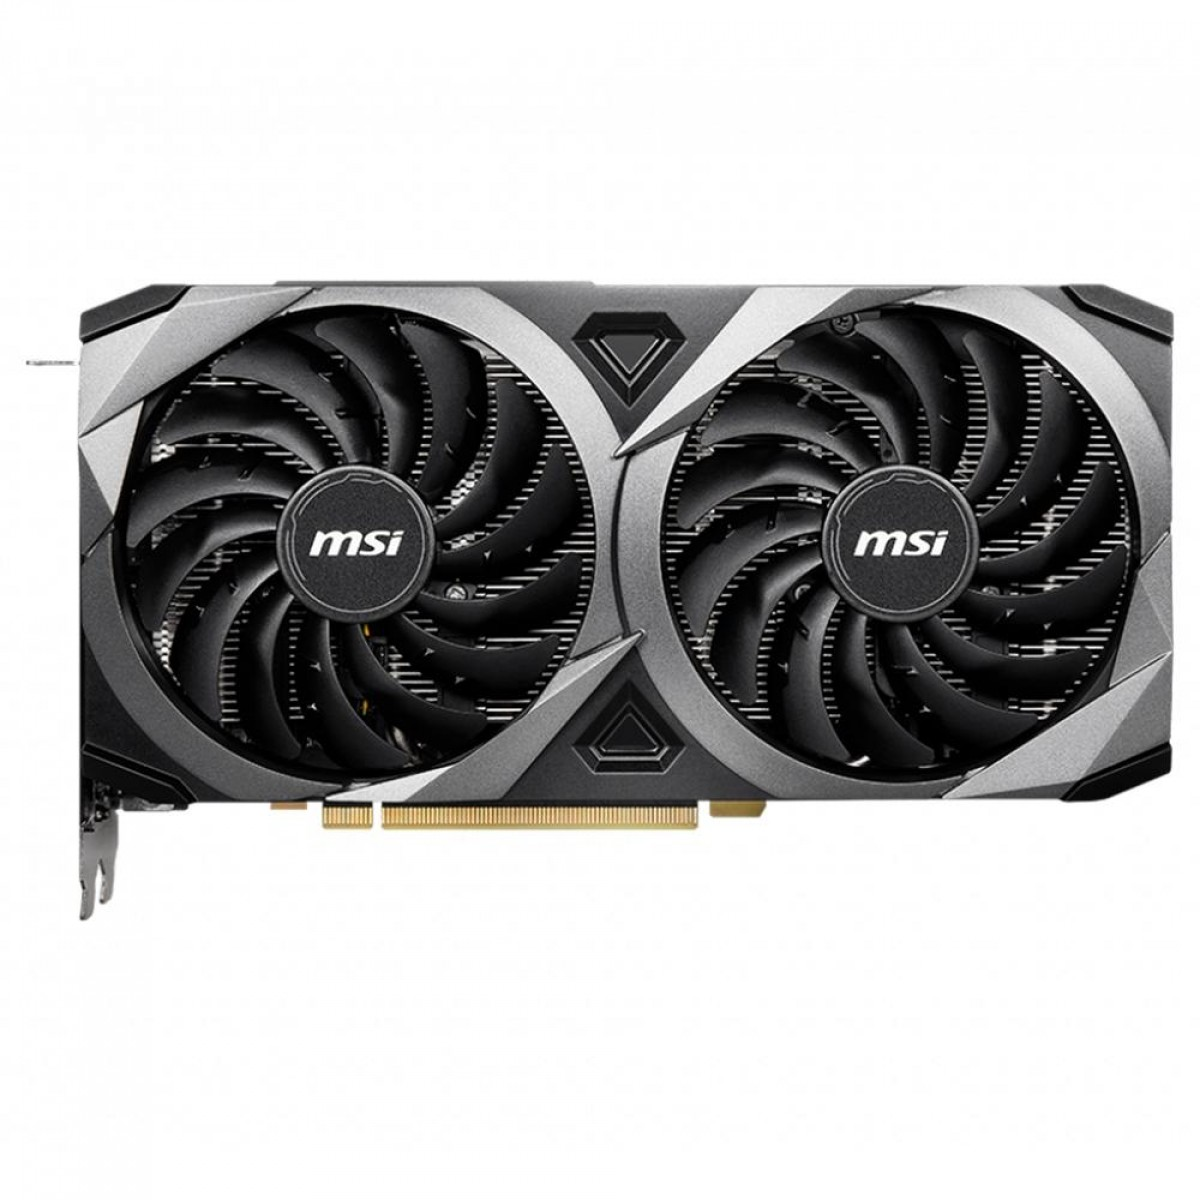 Placa de Vídeo MSI GeForce, RTX 3070 VENTUS 2X, 8GB GDDR6, 256Bit